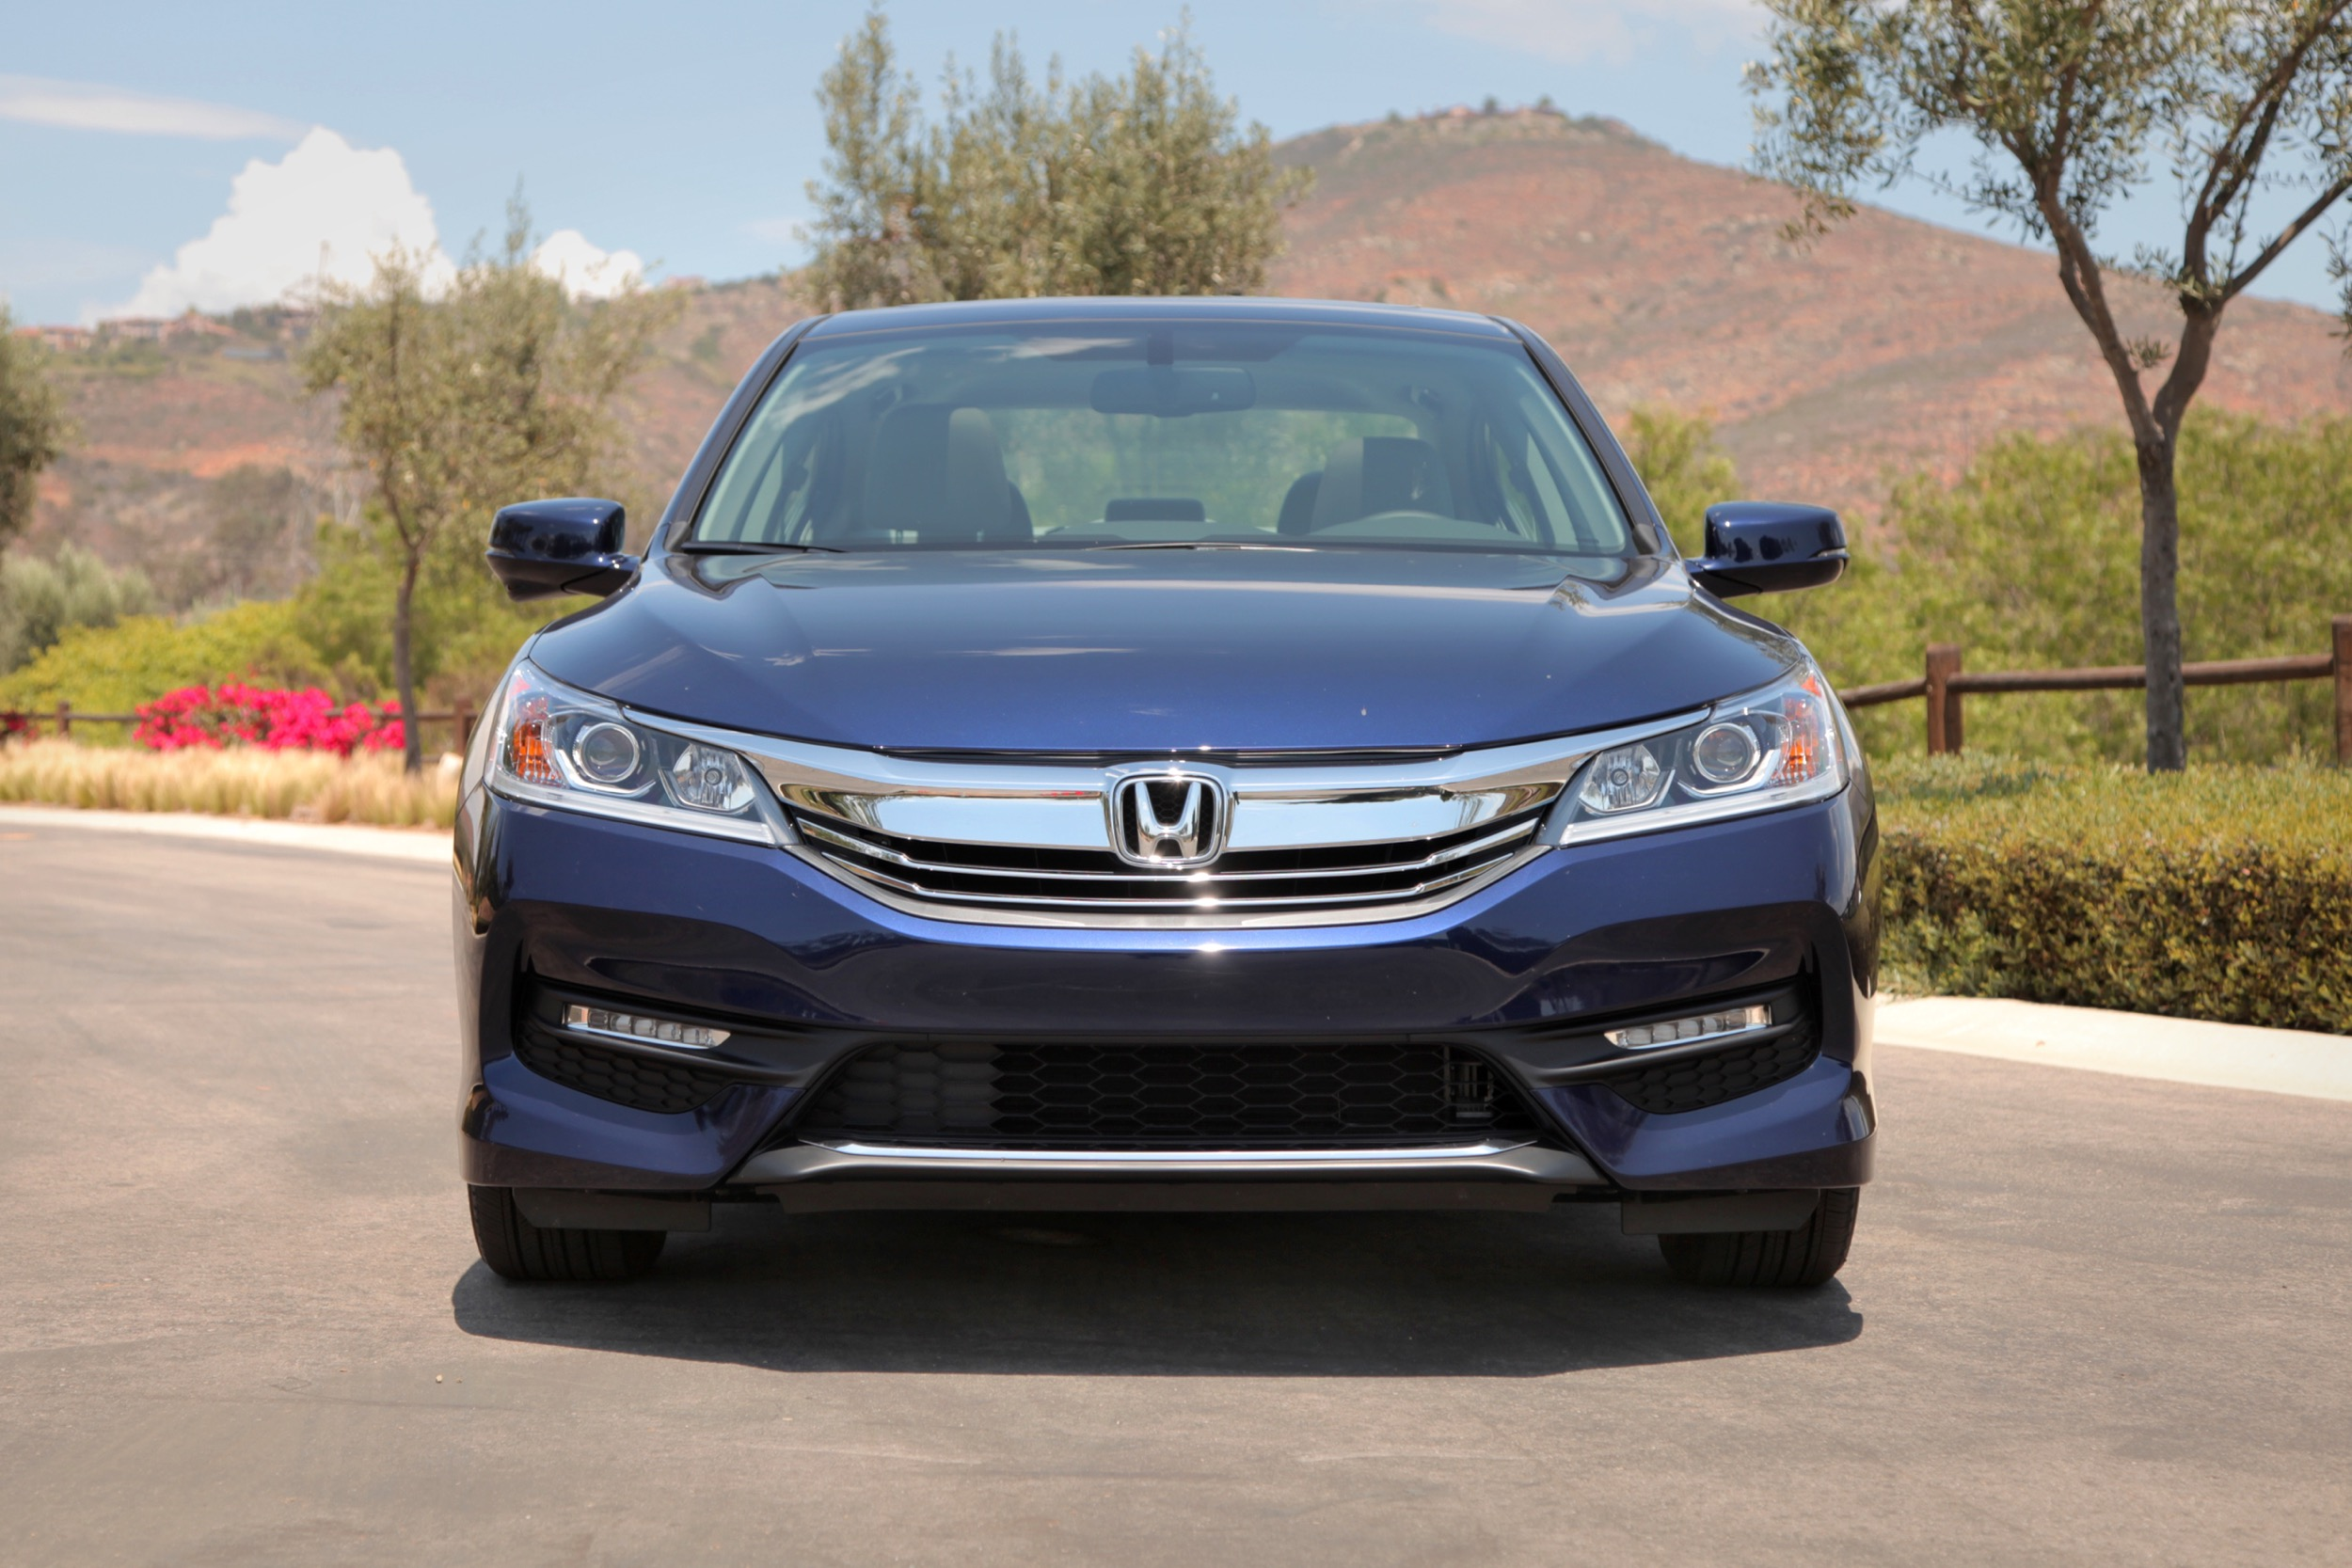 2016 honda accord pricing starts at 22 925 news. Black Bedroom Furniture Sets. Home Design Ideas